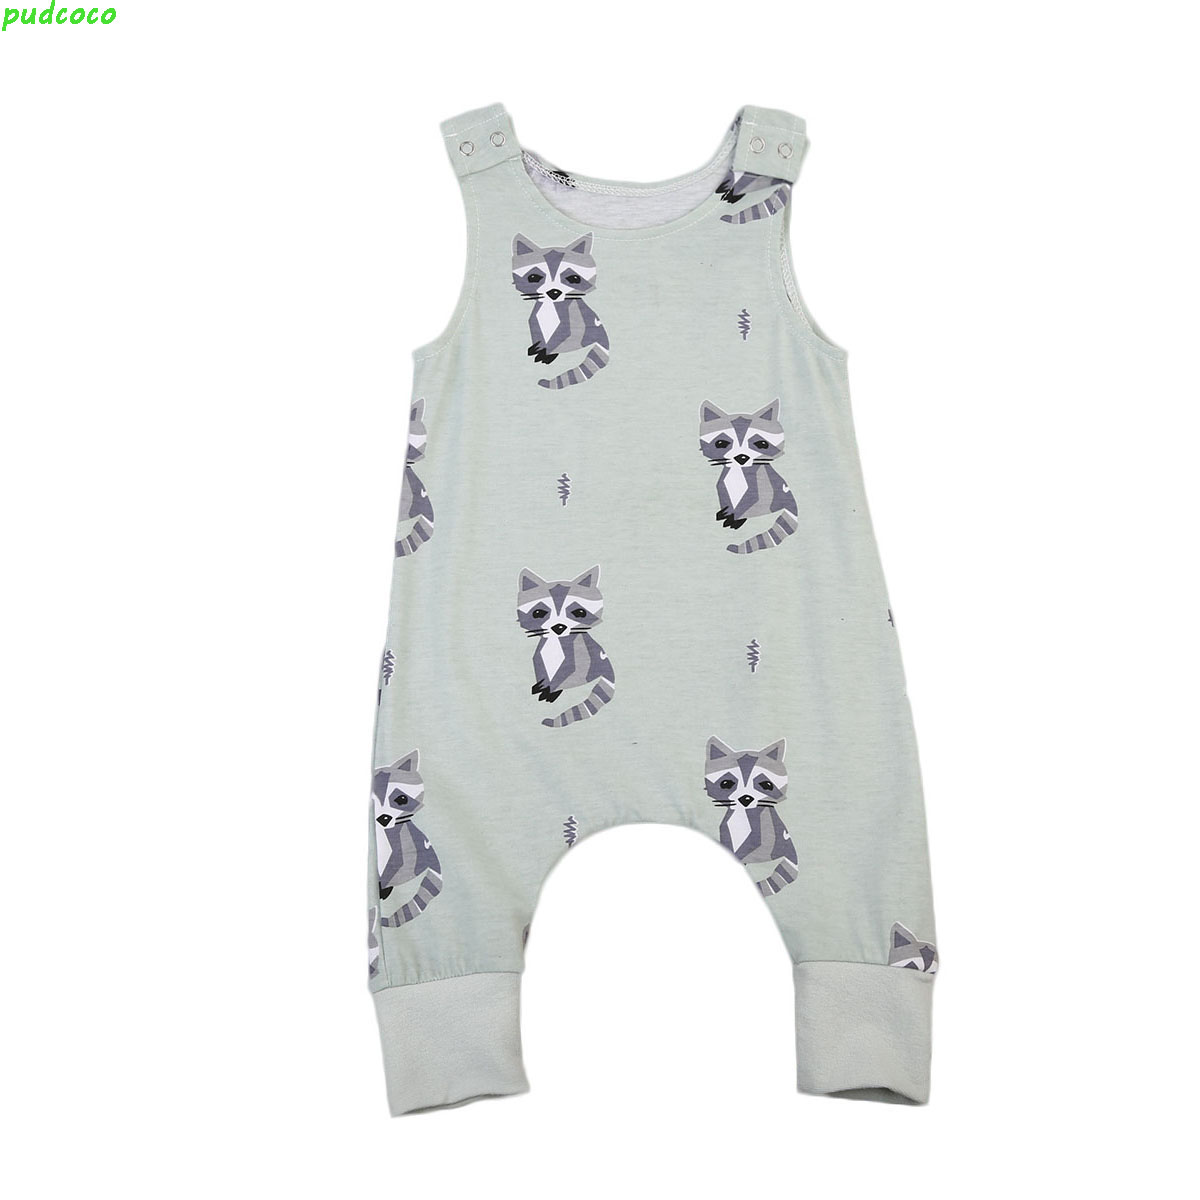 Toddler Newborn Baby Girls Playsuit Romper Jumpsuit Outfits Summer Clothes Set